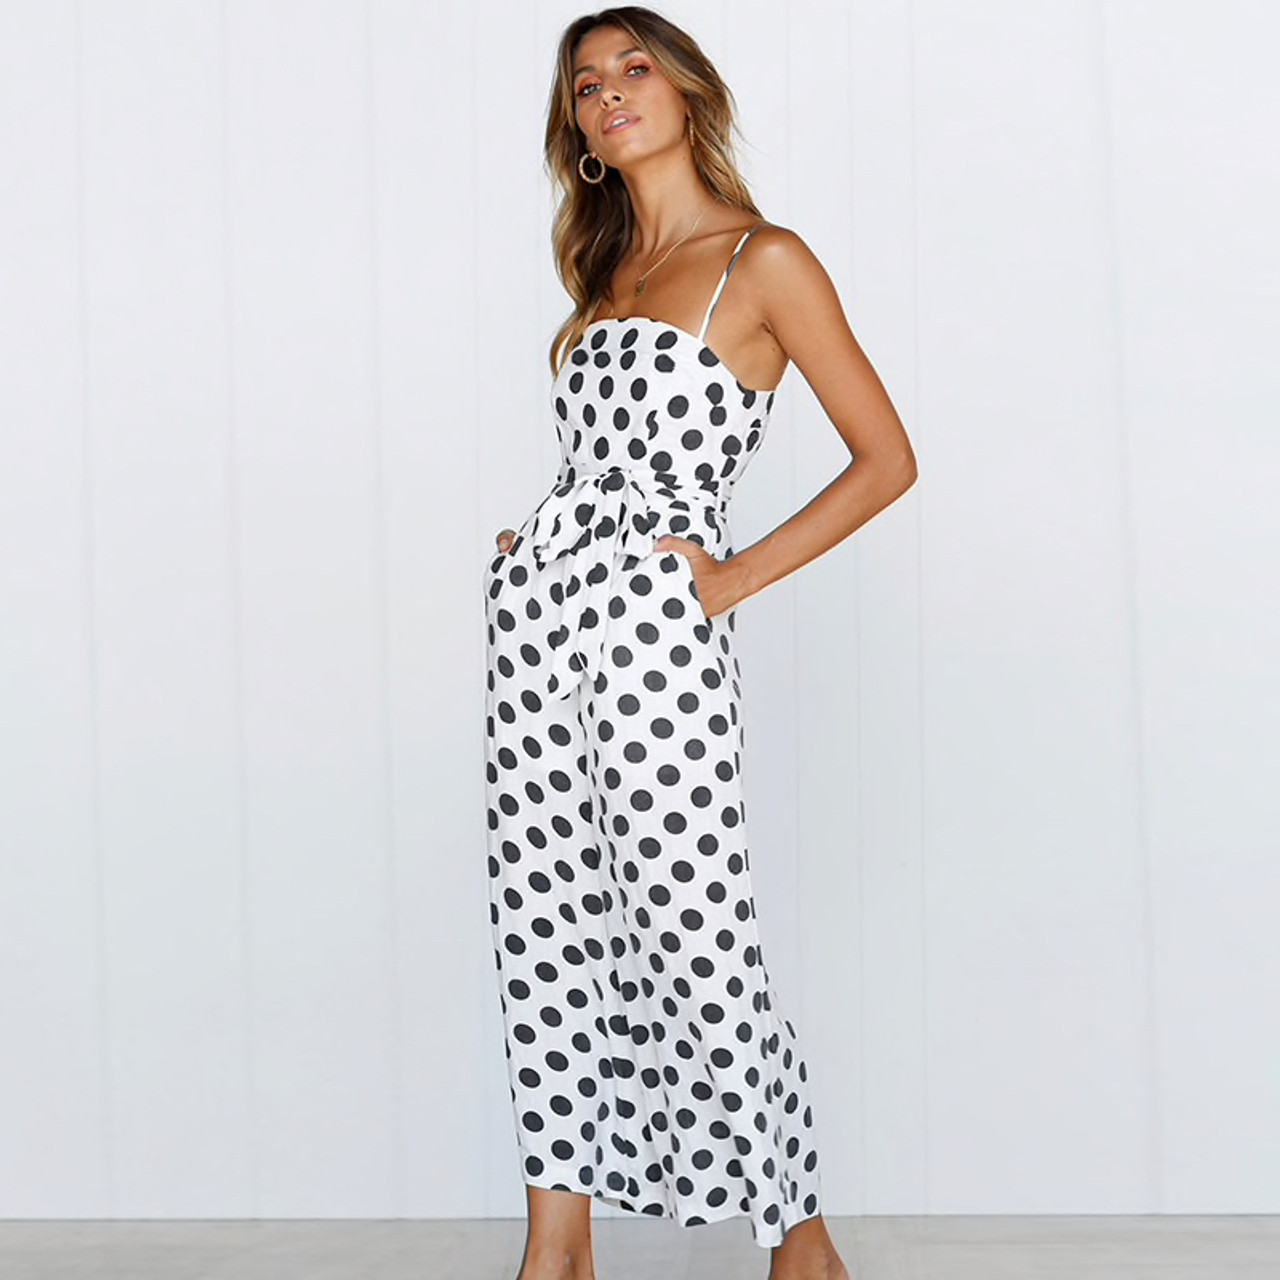 ccfaa656c6 Polka Dot Camisole Jumpsuit Women Rompers Summer Woven Strapless Belted  Wide Leg Pants Jumpsuit Casual Overalls Femme White